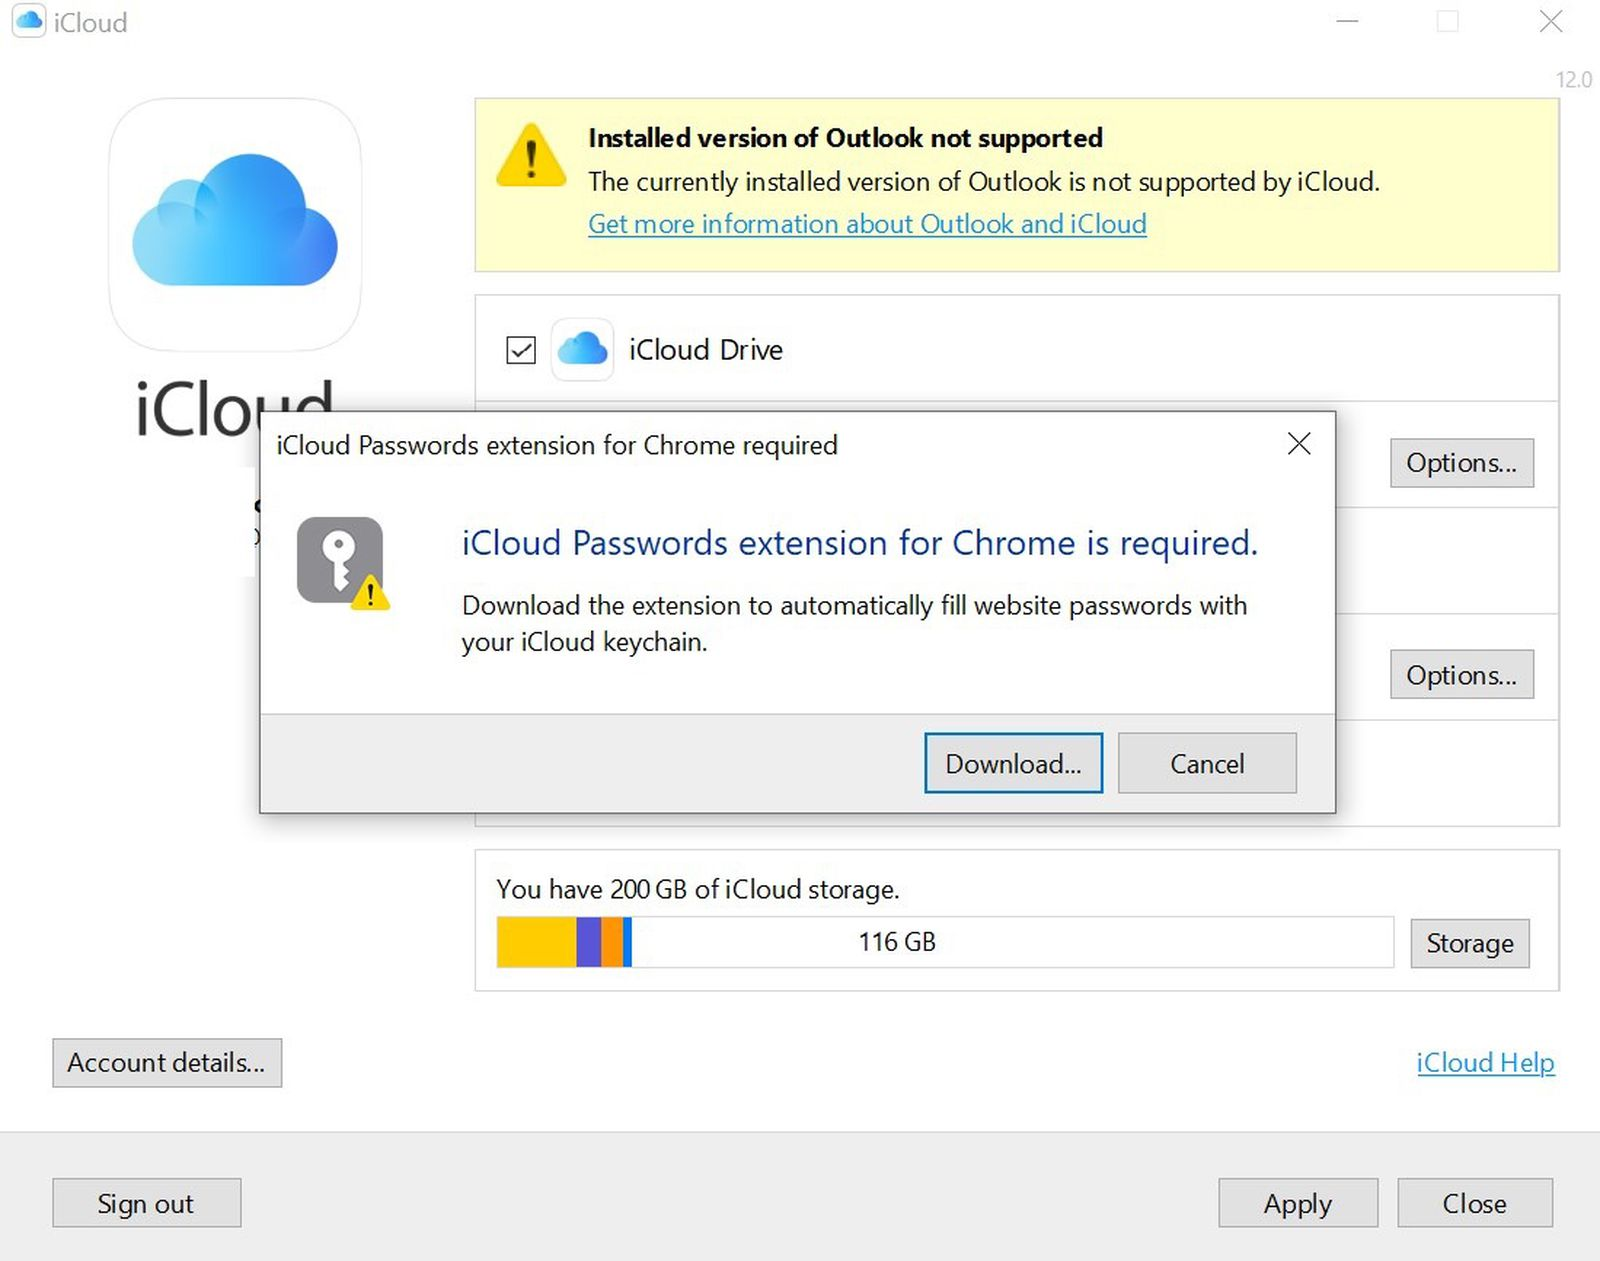 Apple Pulls Version 12 of iCloud for Windows That Supported iCloud Passwords Chrome Extension